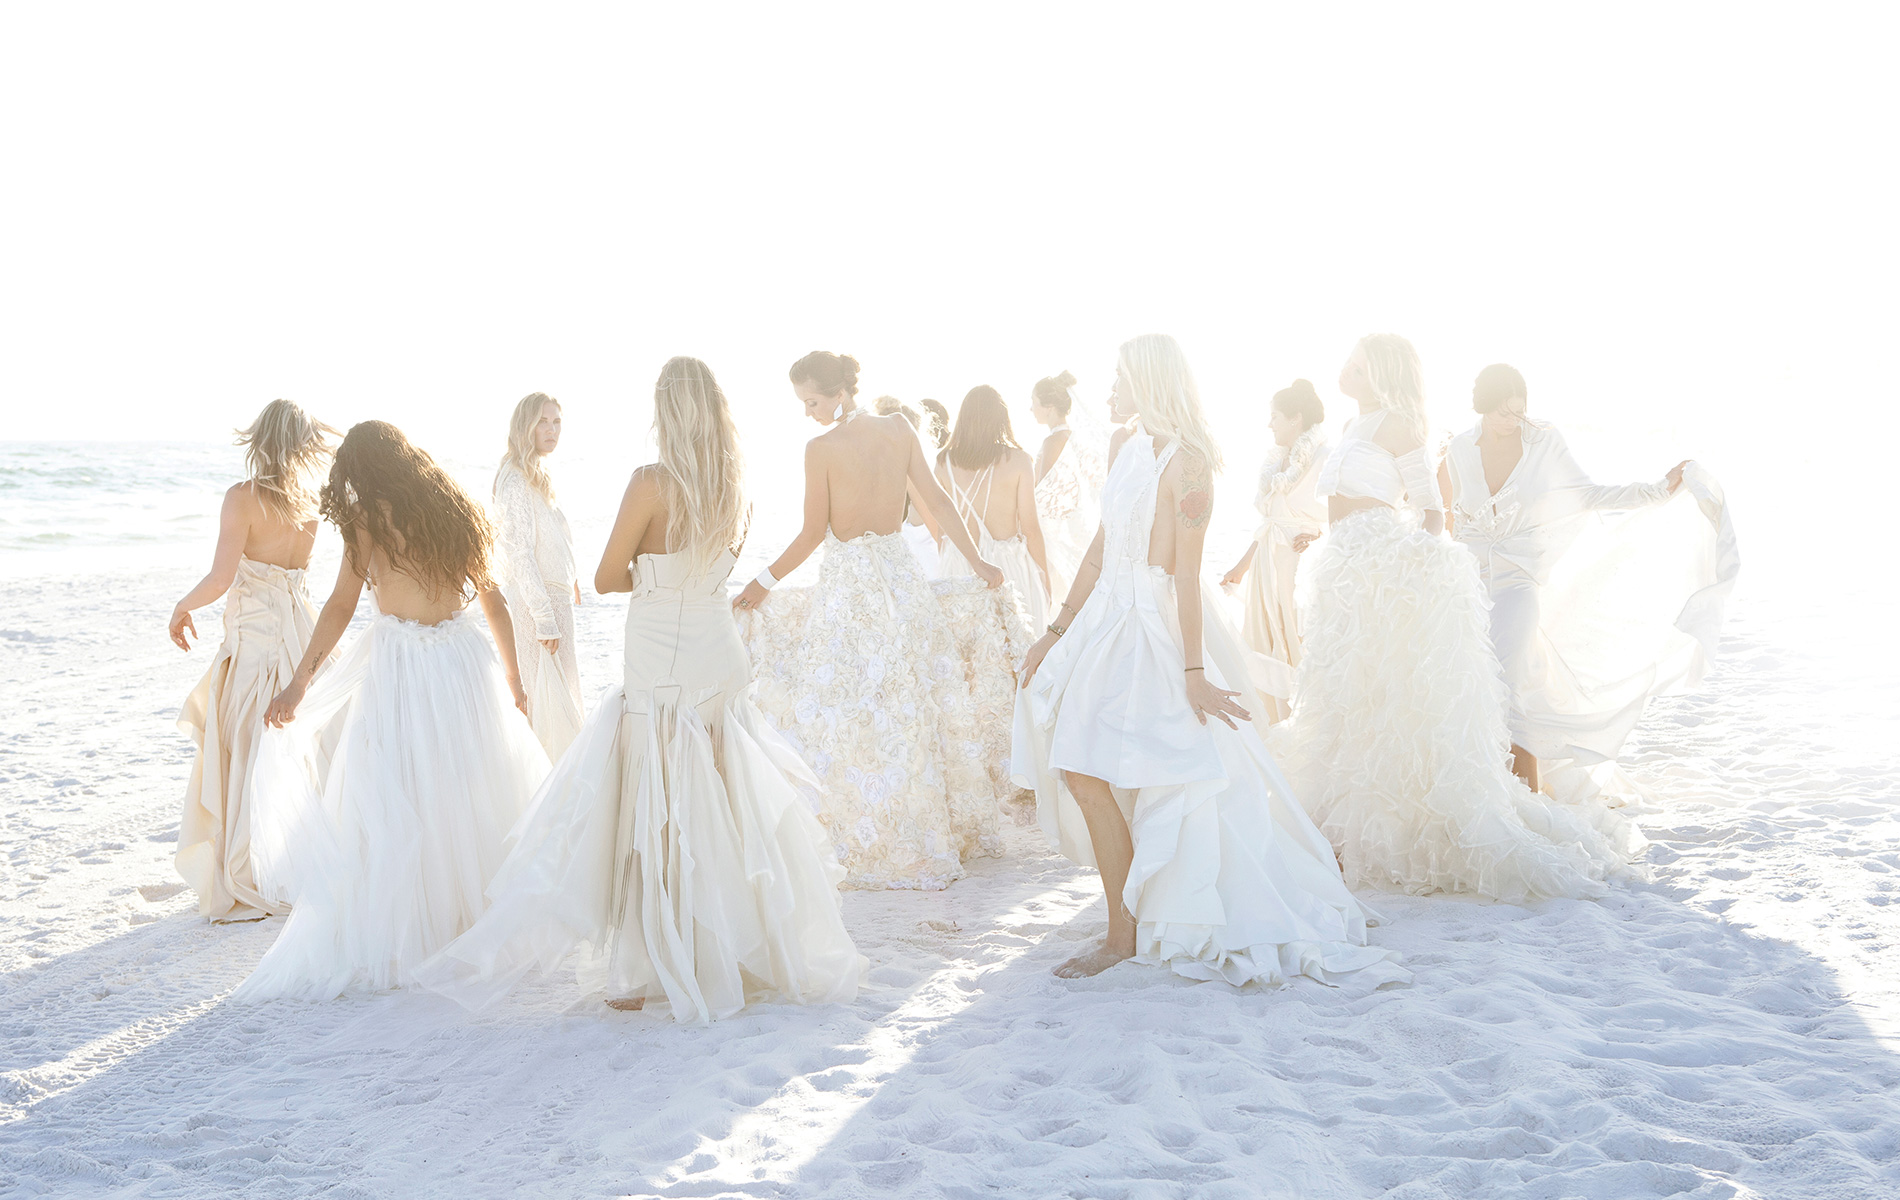 Nicole Paloma Bridal, group shot of models in wedding gowns on the beach